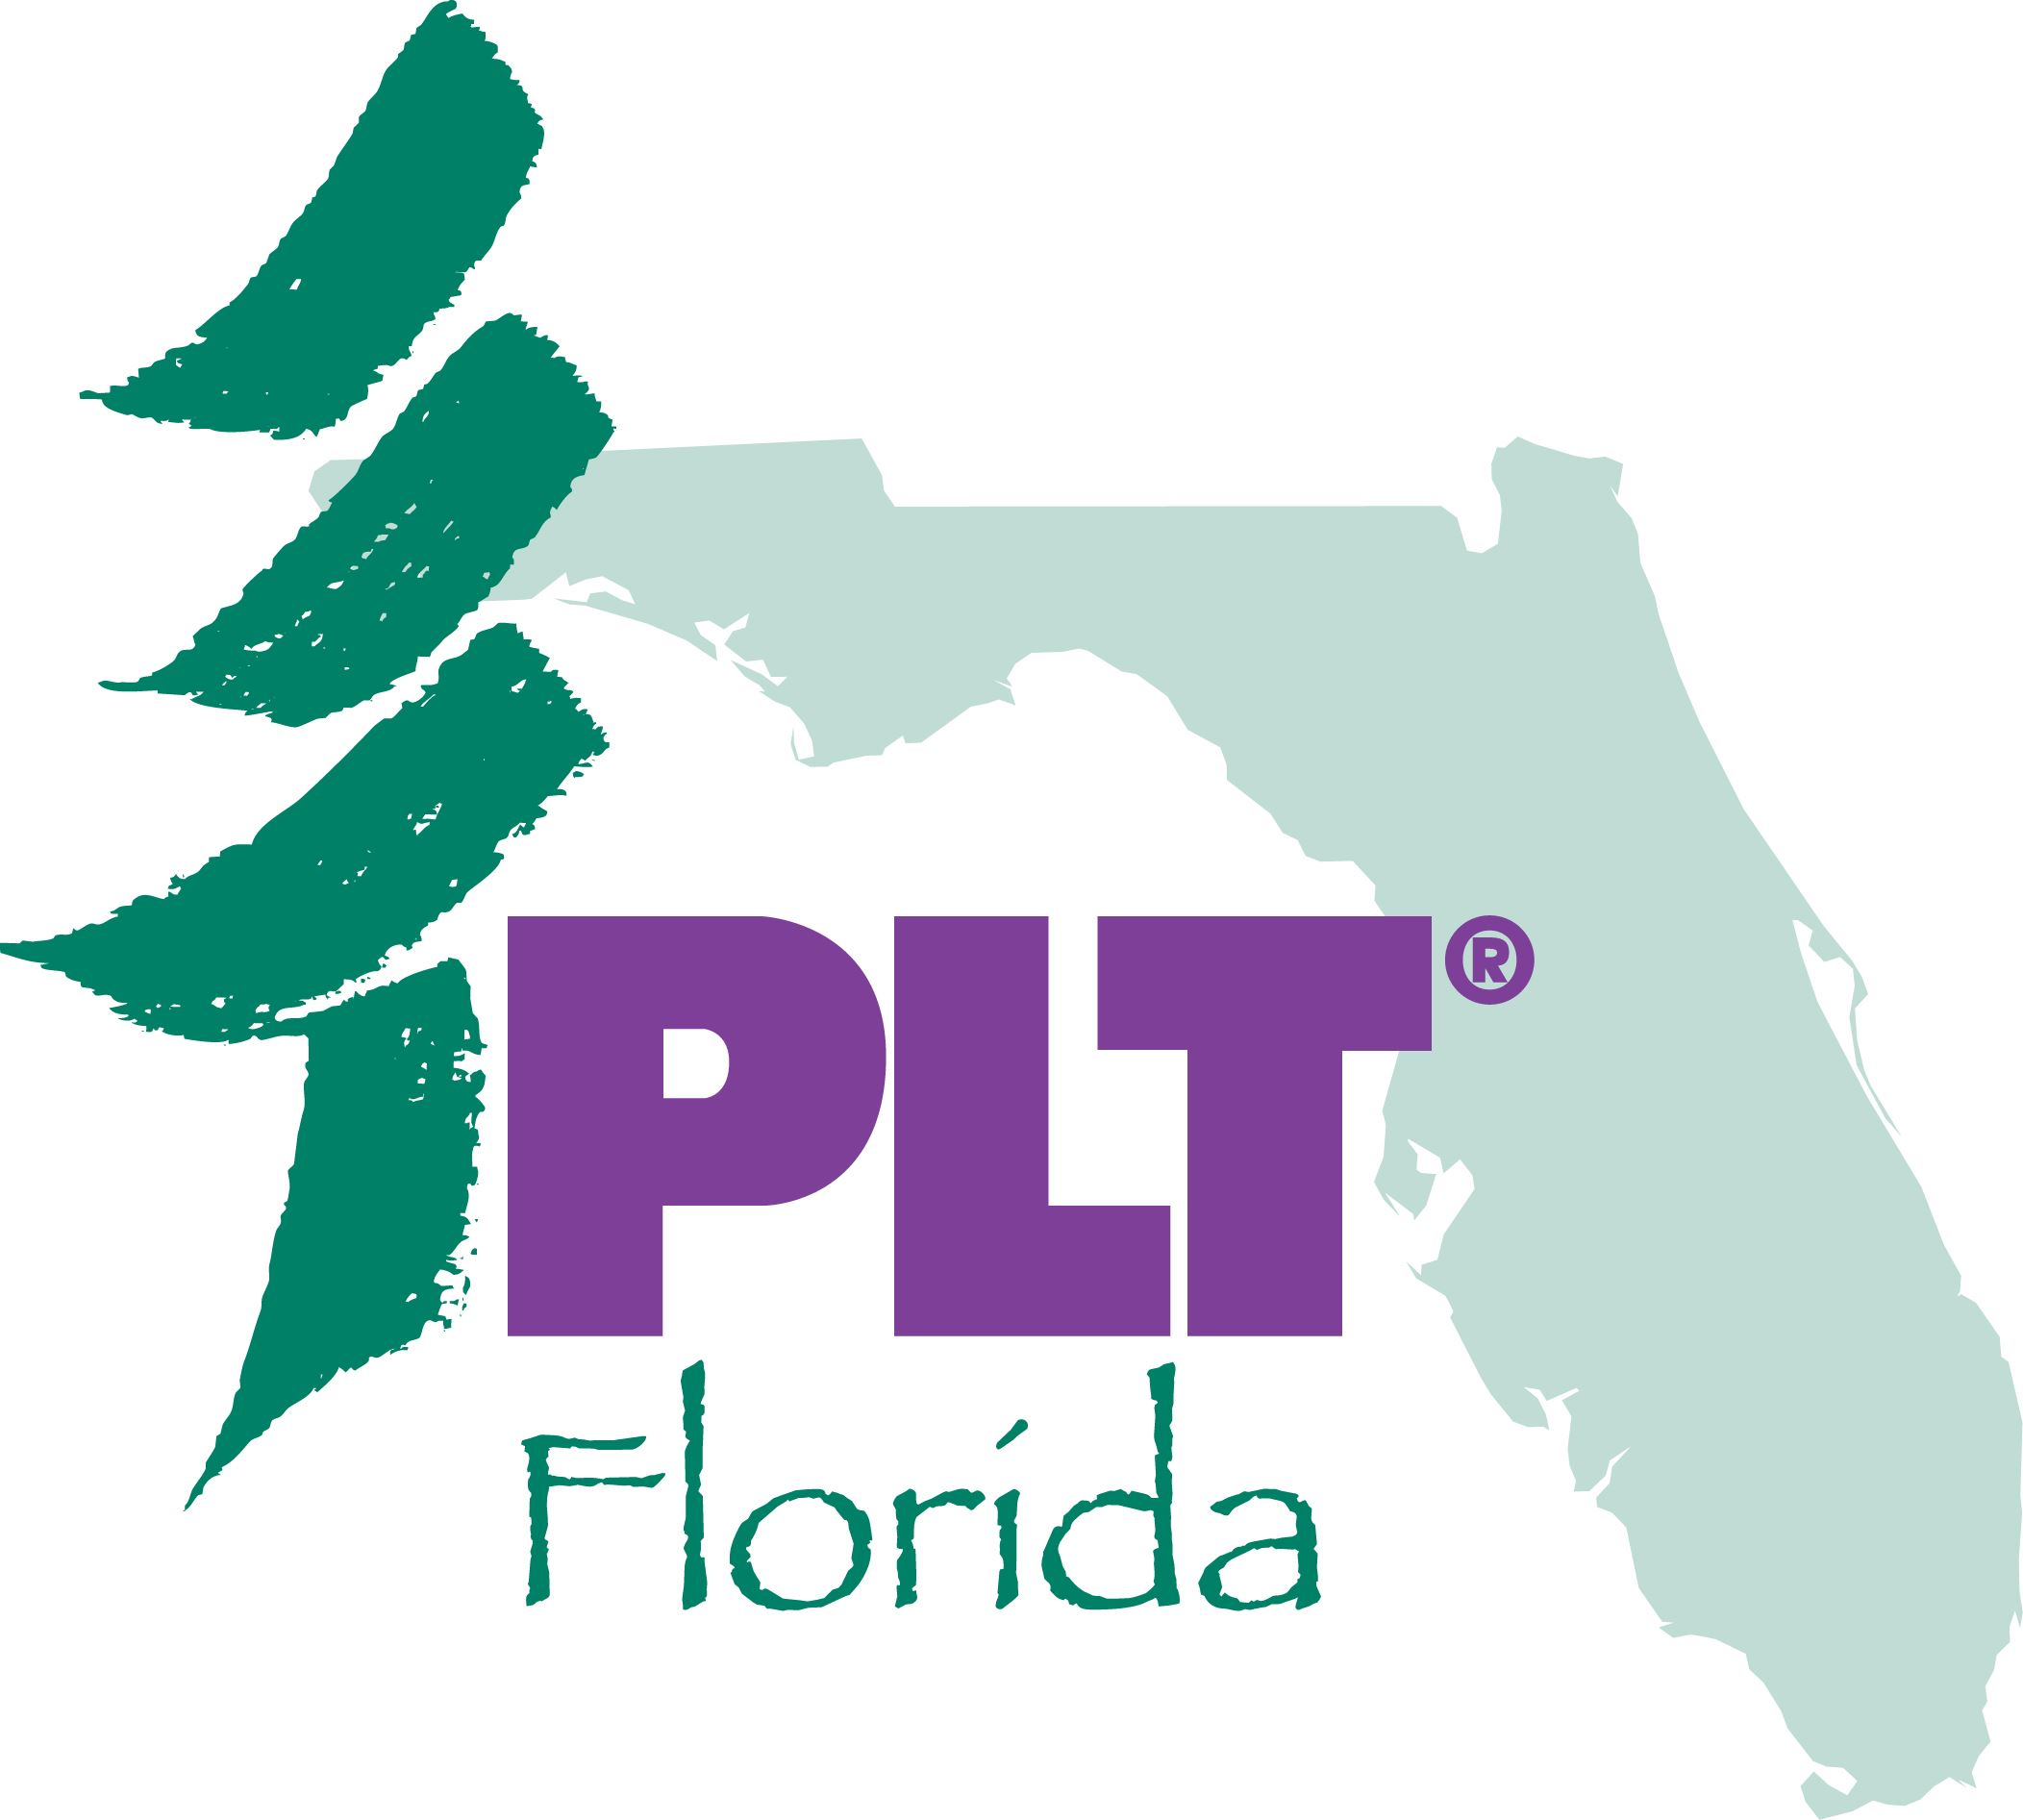 PLTLogo_FL_outline